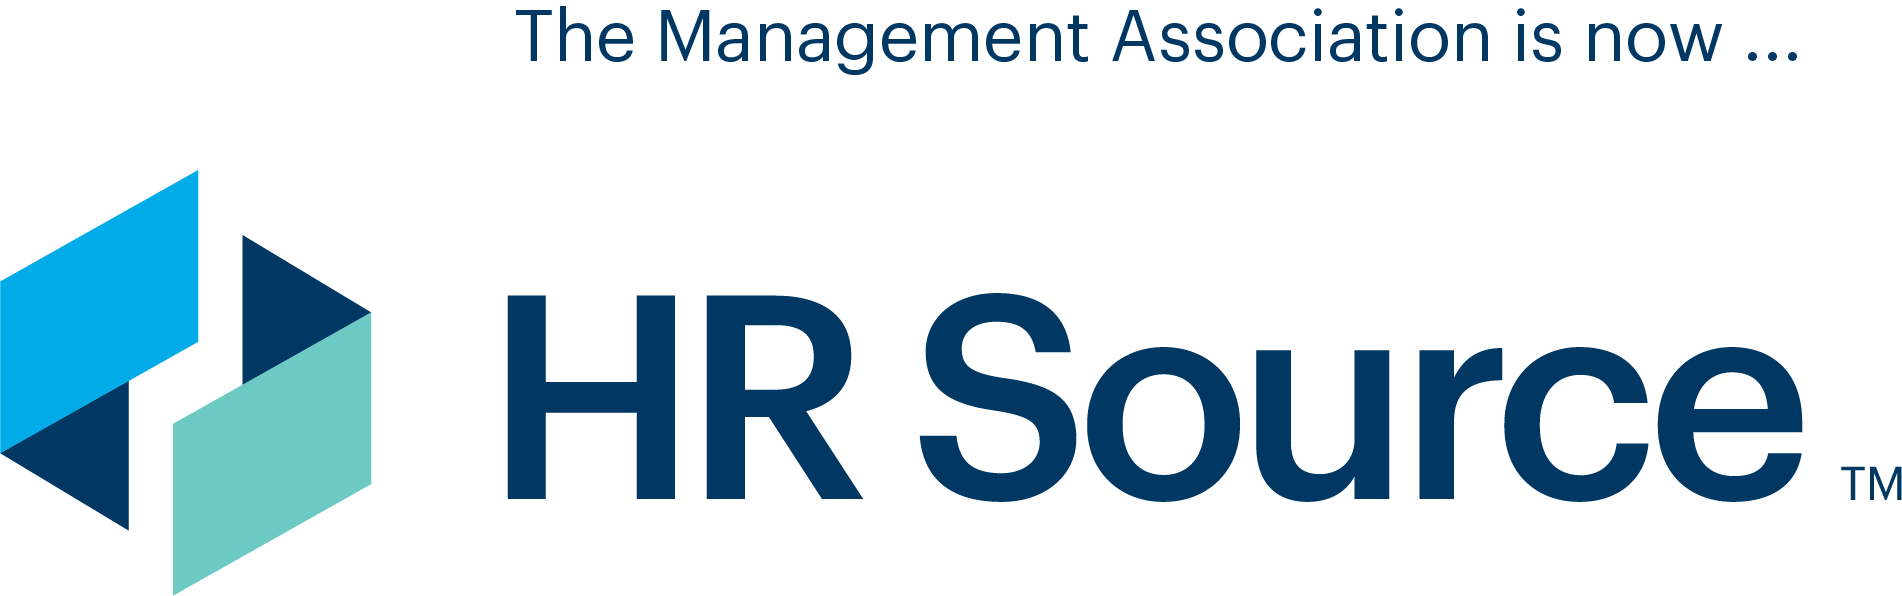 HR Source logo